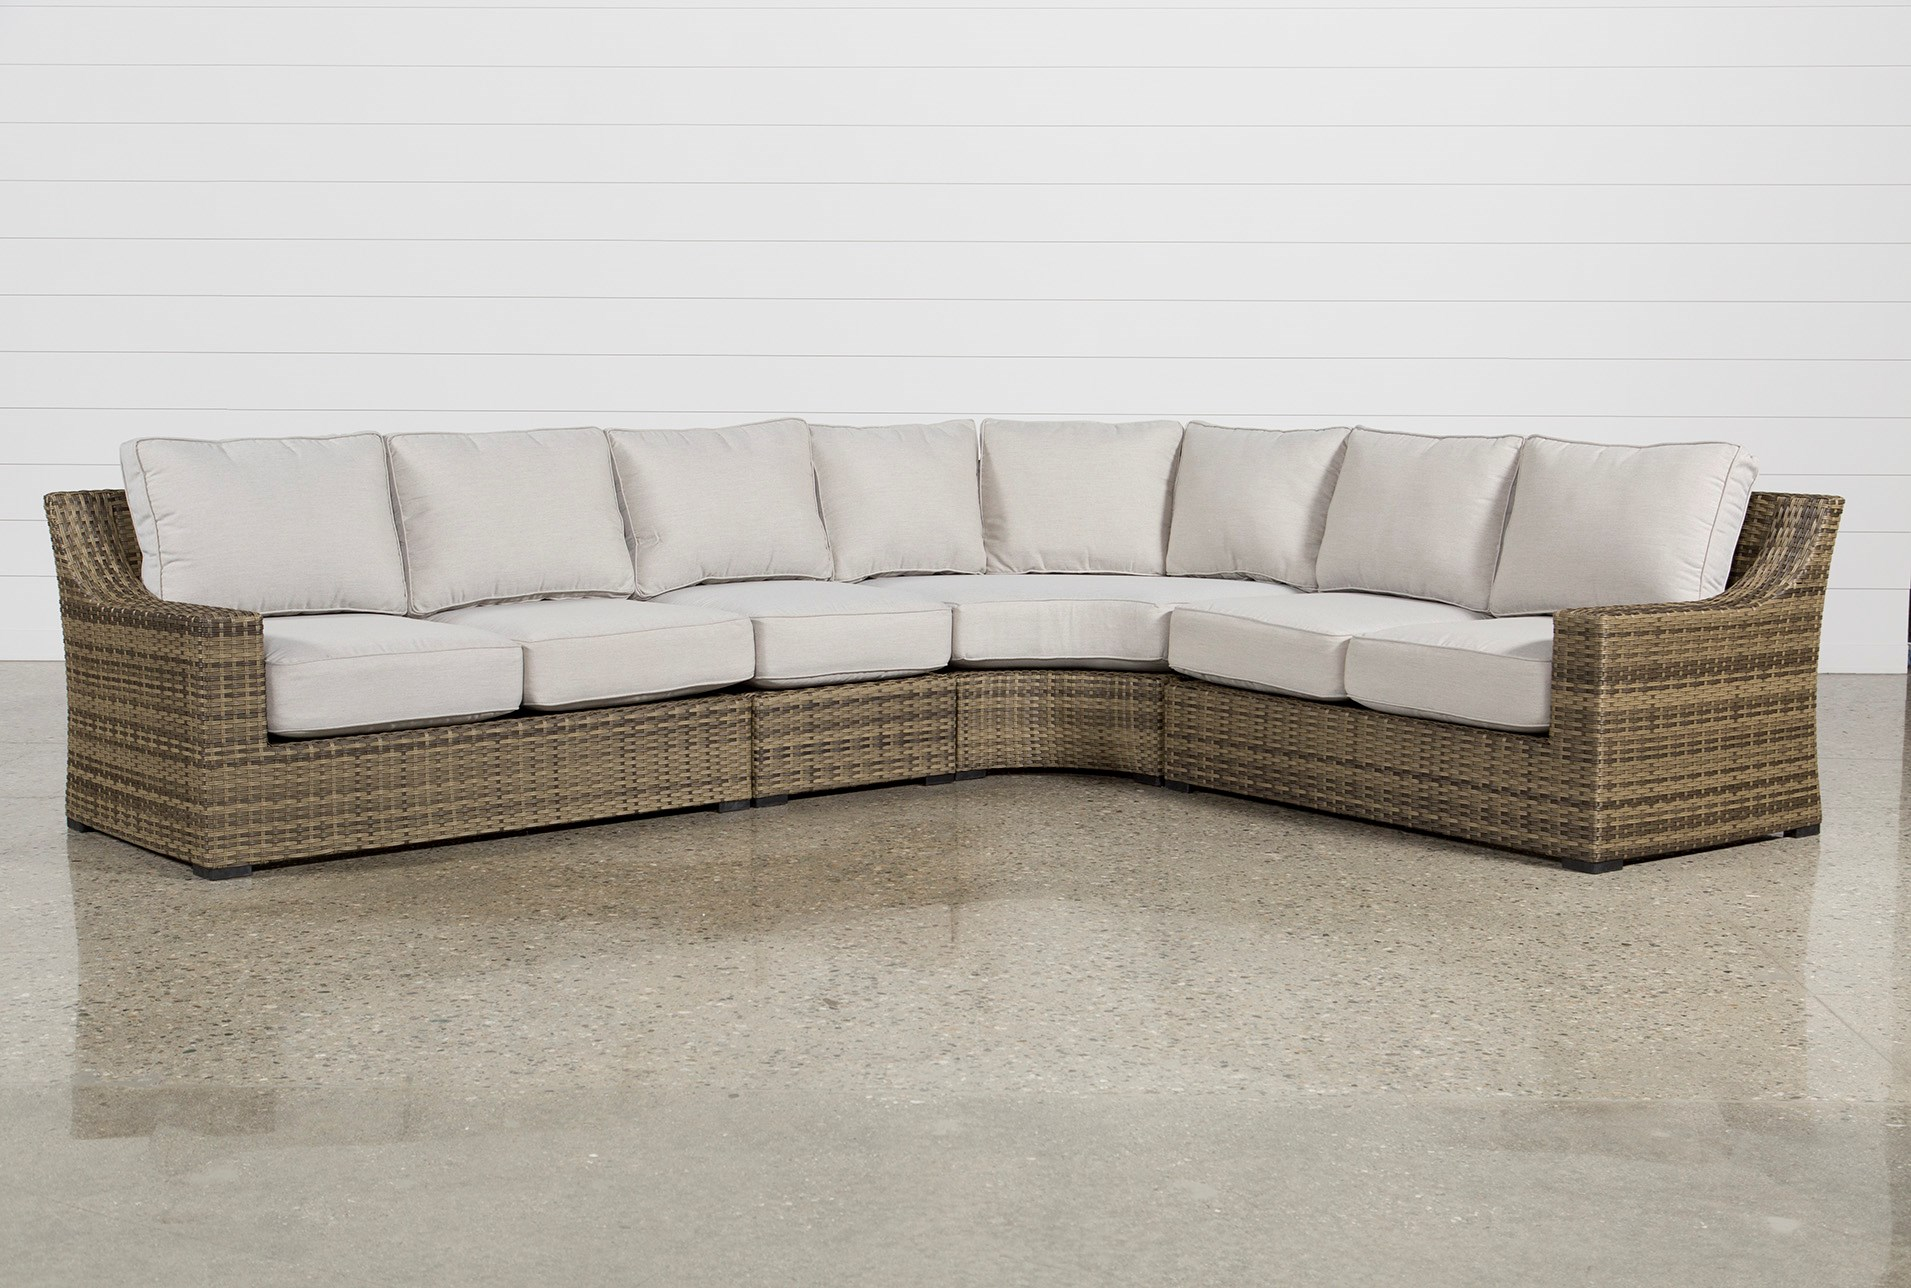 Elegant Sectional Patio Furniture Clearance